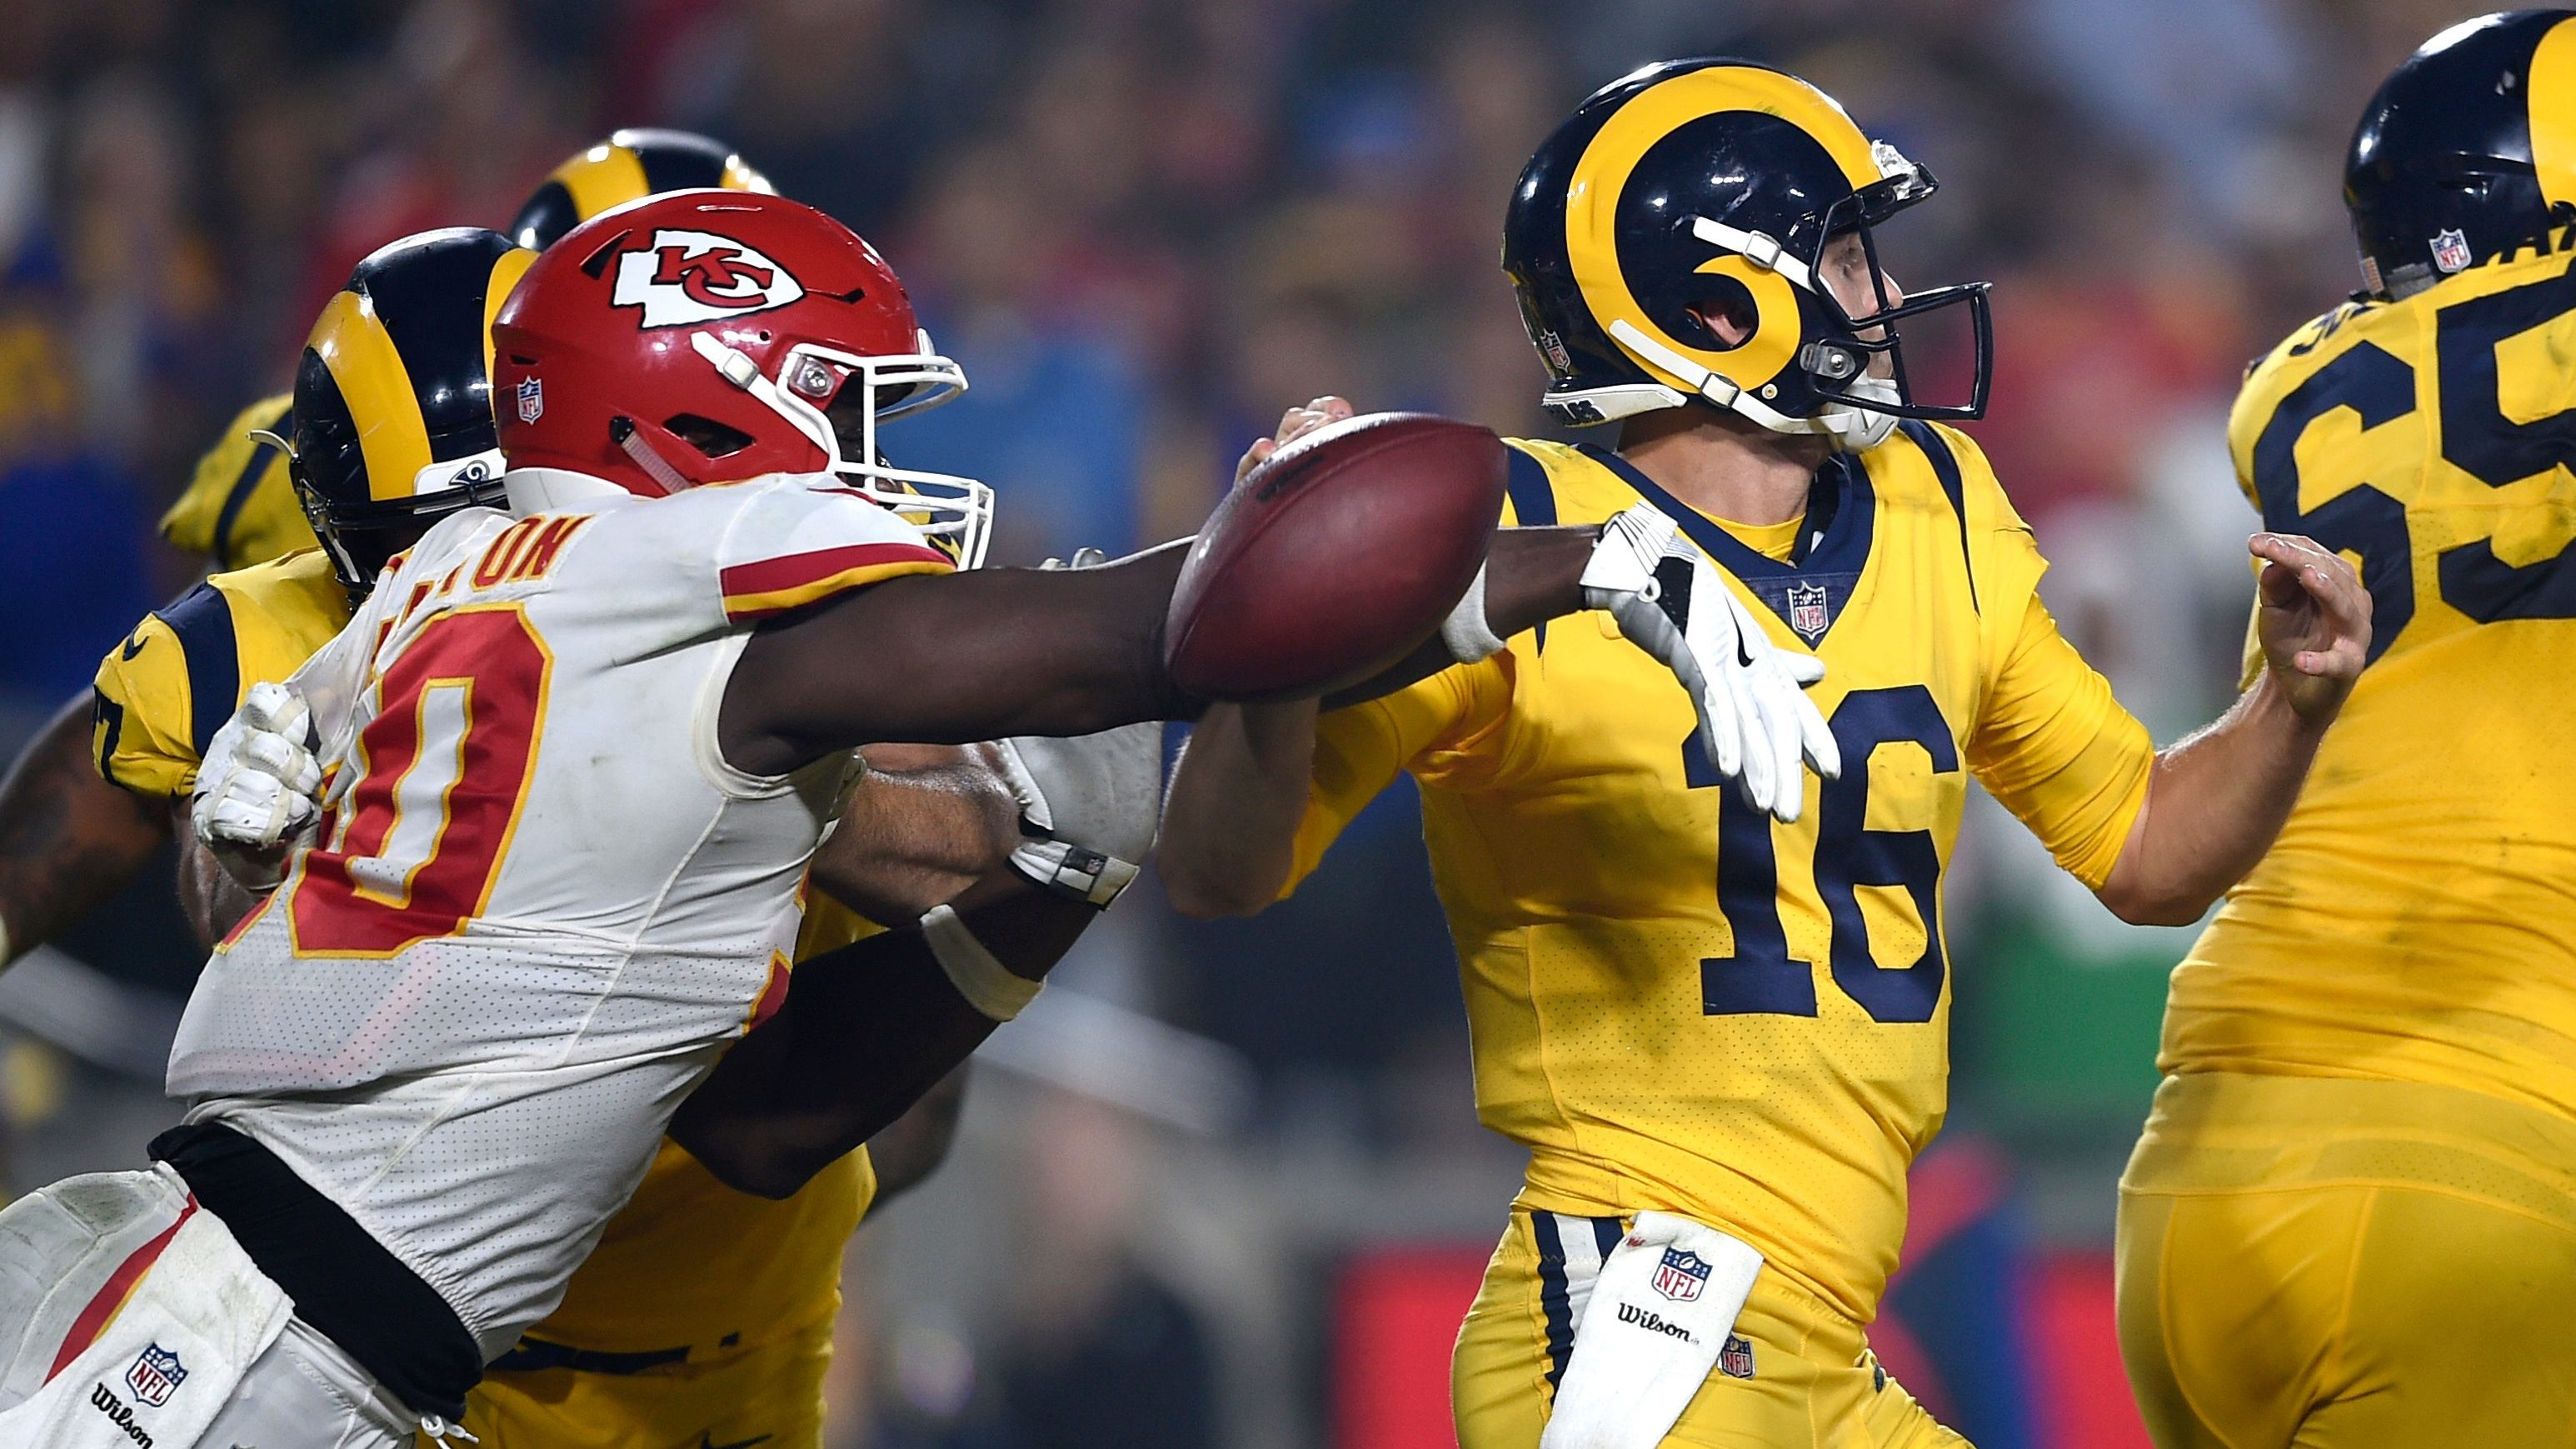 Kansas City Chiefs outside linebacker Justin Houston, left, strips the ball away from Los Angeles Rams quarterback Jared Goff (16) during the second half of an NFL football game, Monday, Nov. 19, 2018, in Los Angeles. Chiefs defensive end Allen Bailey recovered the ball and scored a touchdown.